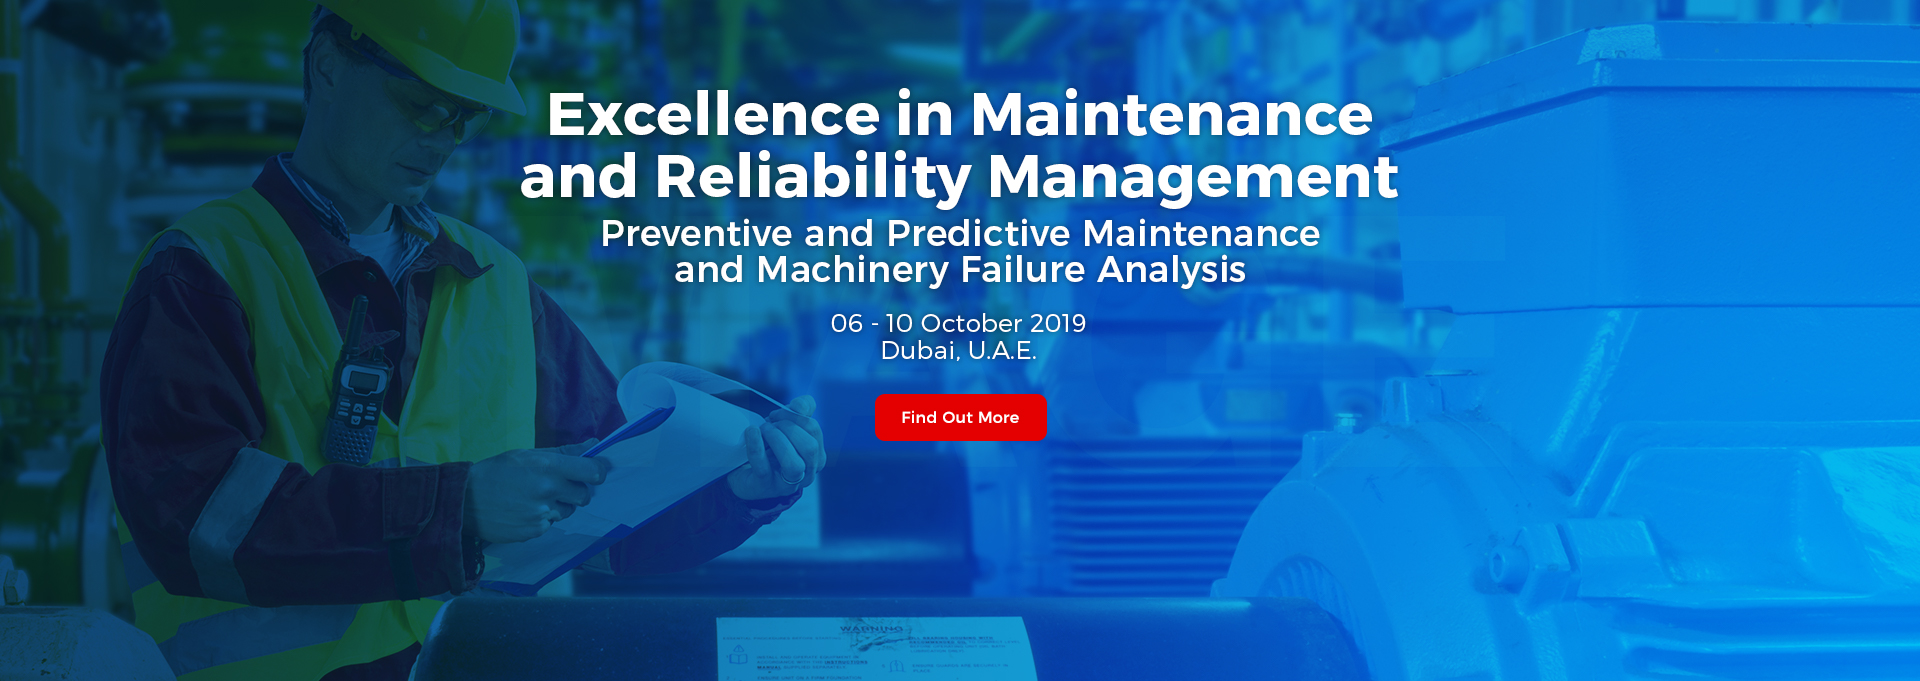 Excellence in Maintenance and Reliability Management